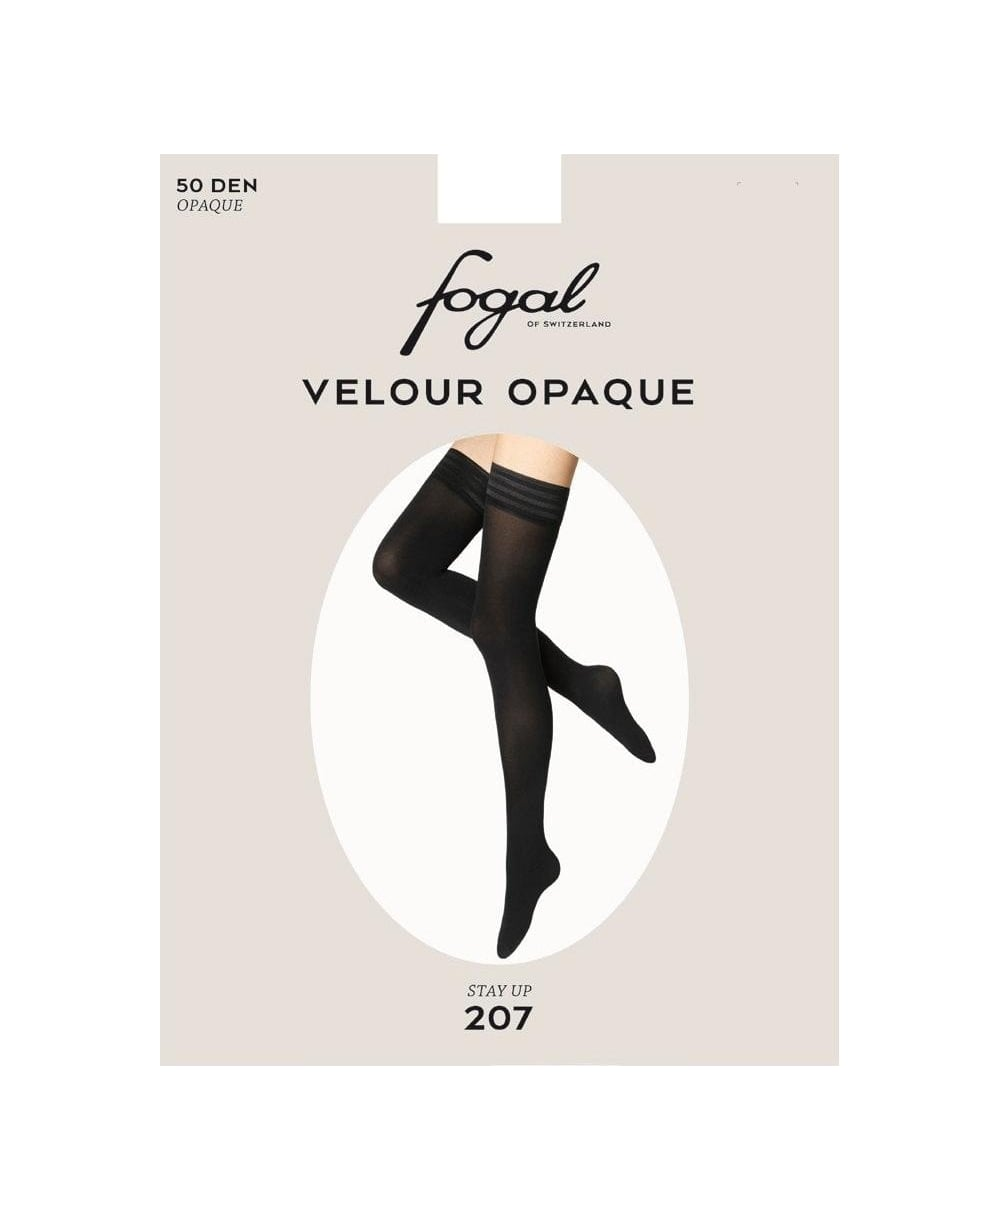 0d0f0817c2e Fogal Velour Opaque 50 Denier Stay-Ups - Hold-Ups from luxury-legs ...